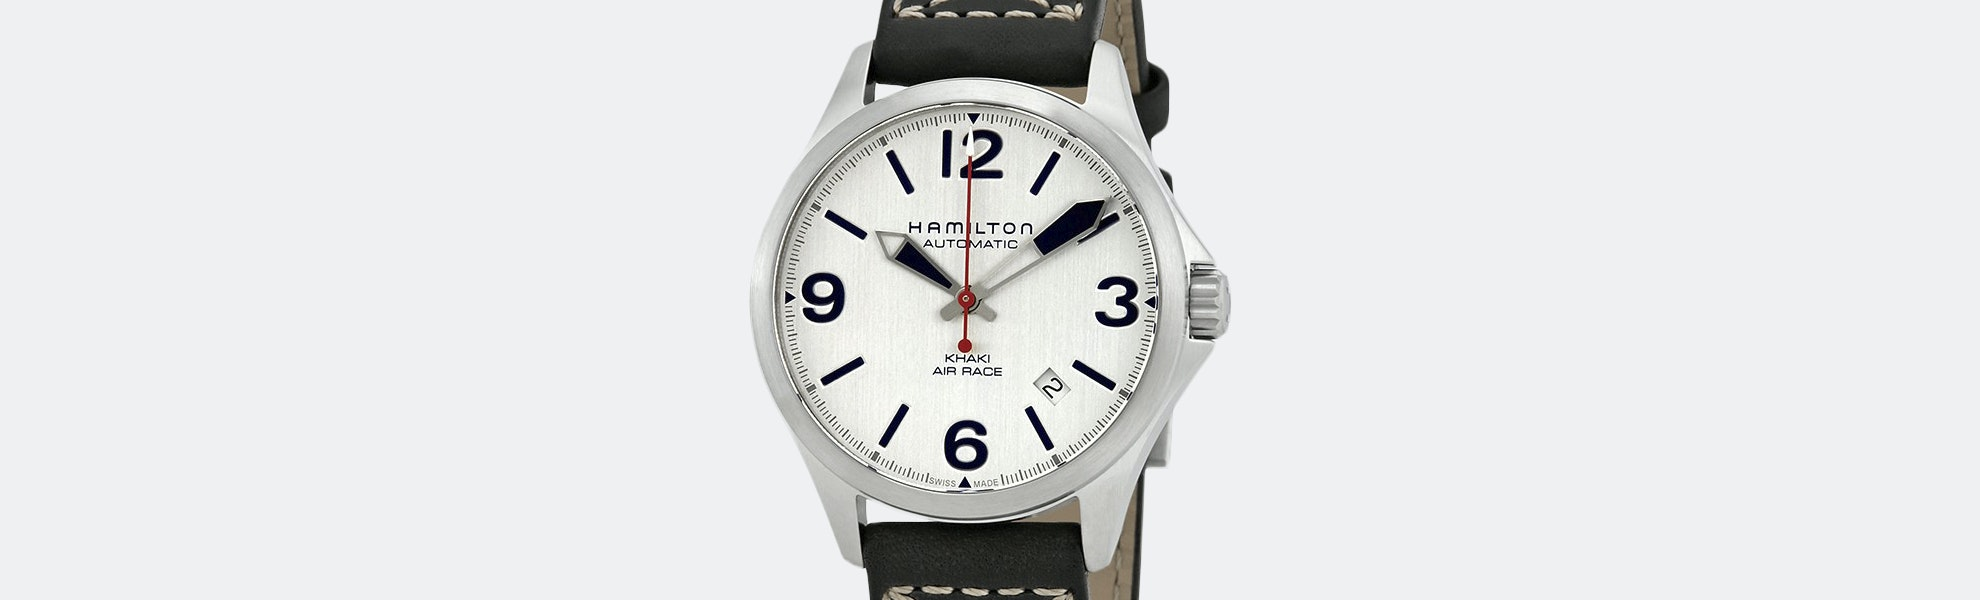 Hamilton Khaki Aviation Automatic Watch